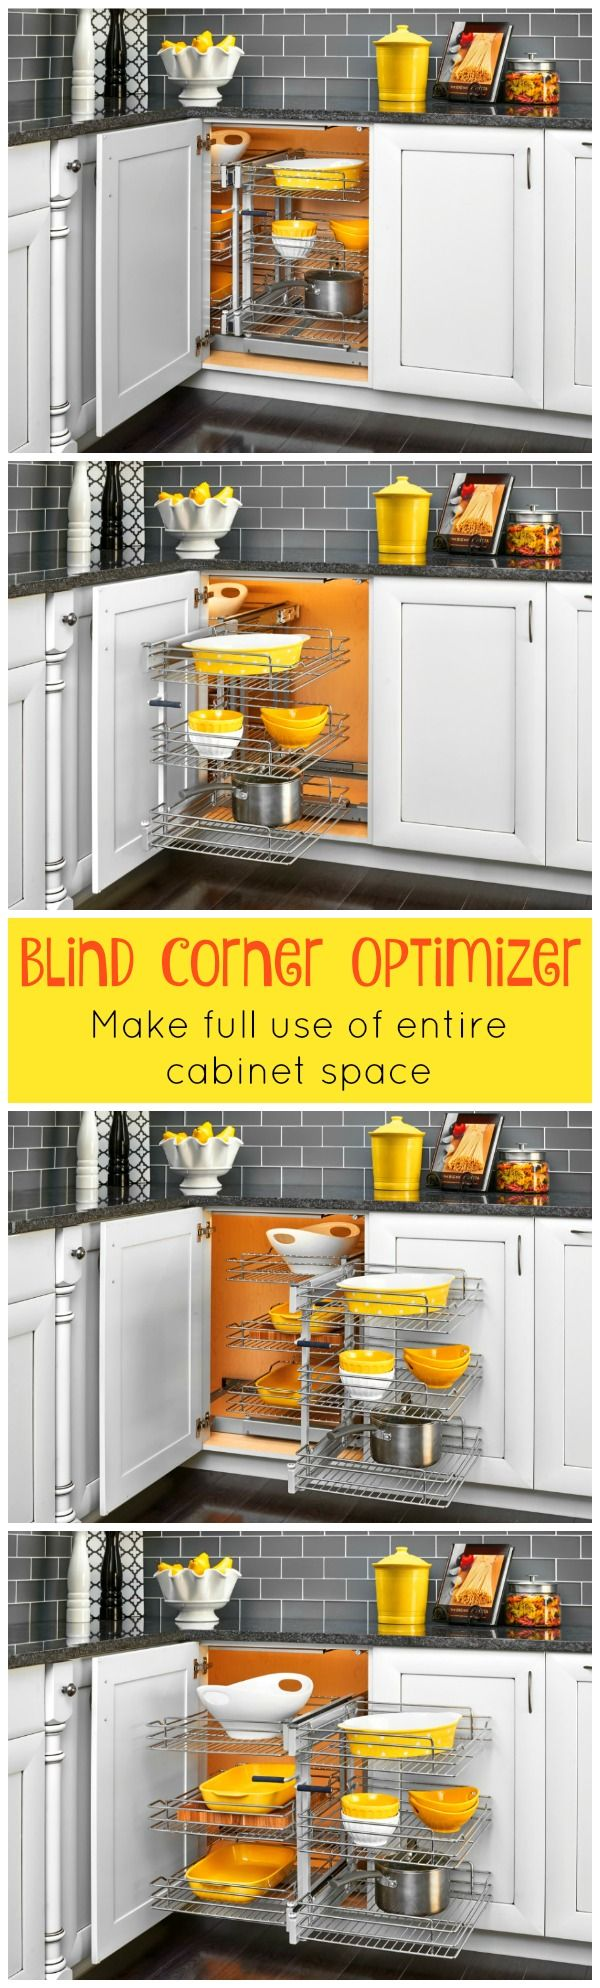 Kitchen corner cabinet wasted space - Blind Corner Cabinet Pull Out Chrome 2 Tier Basket Organizer